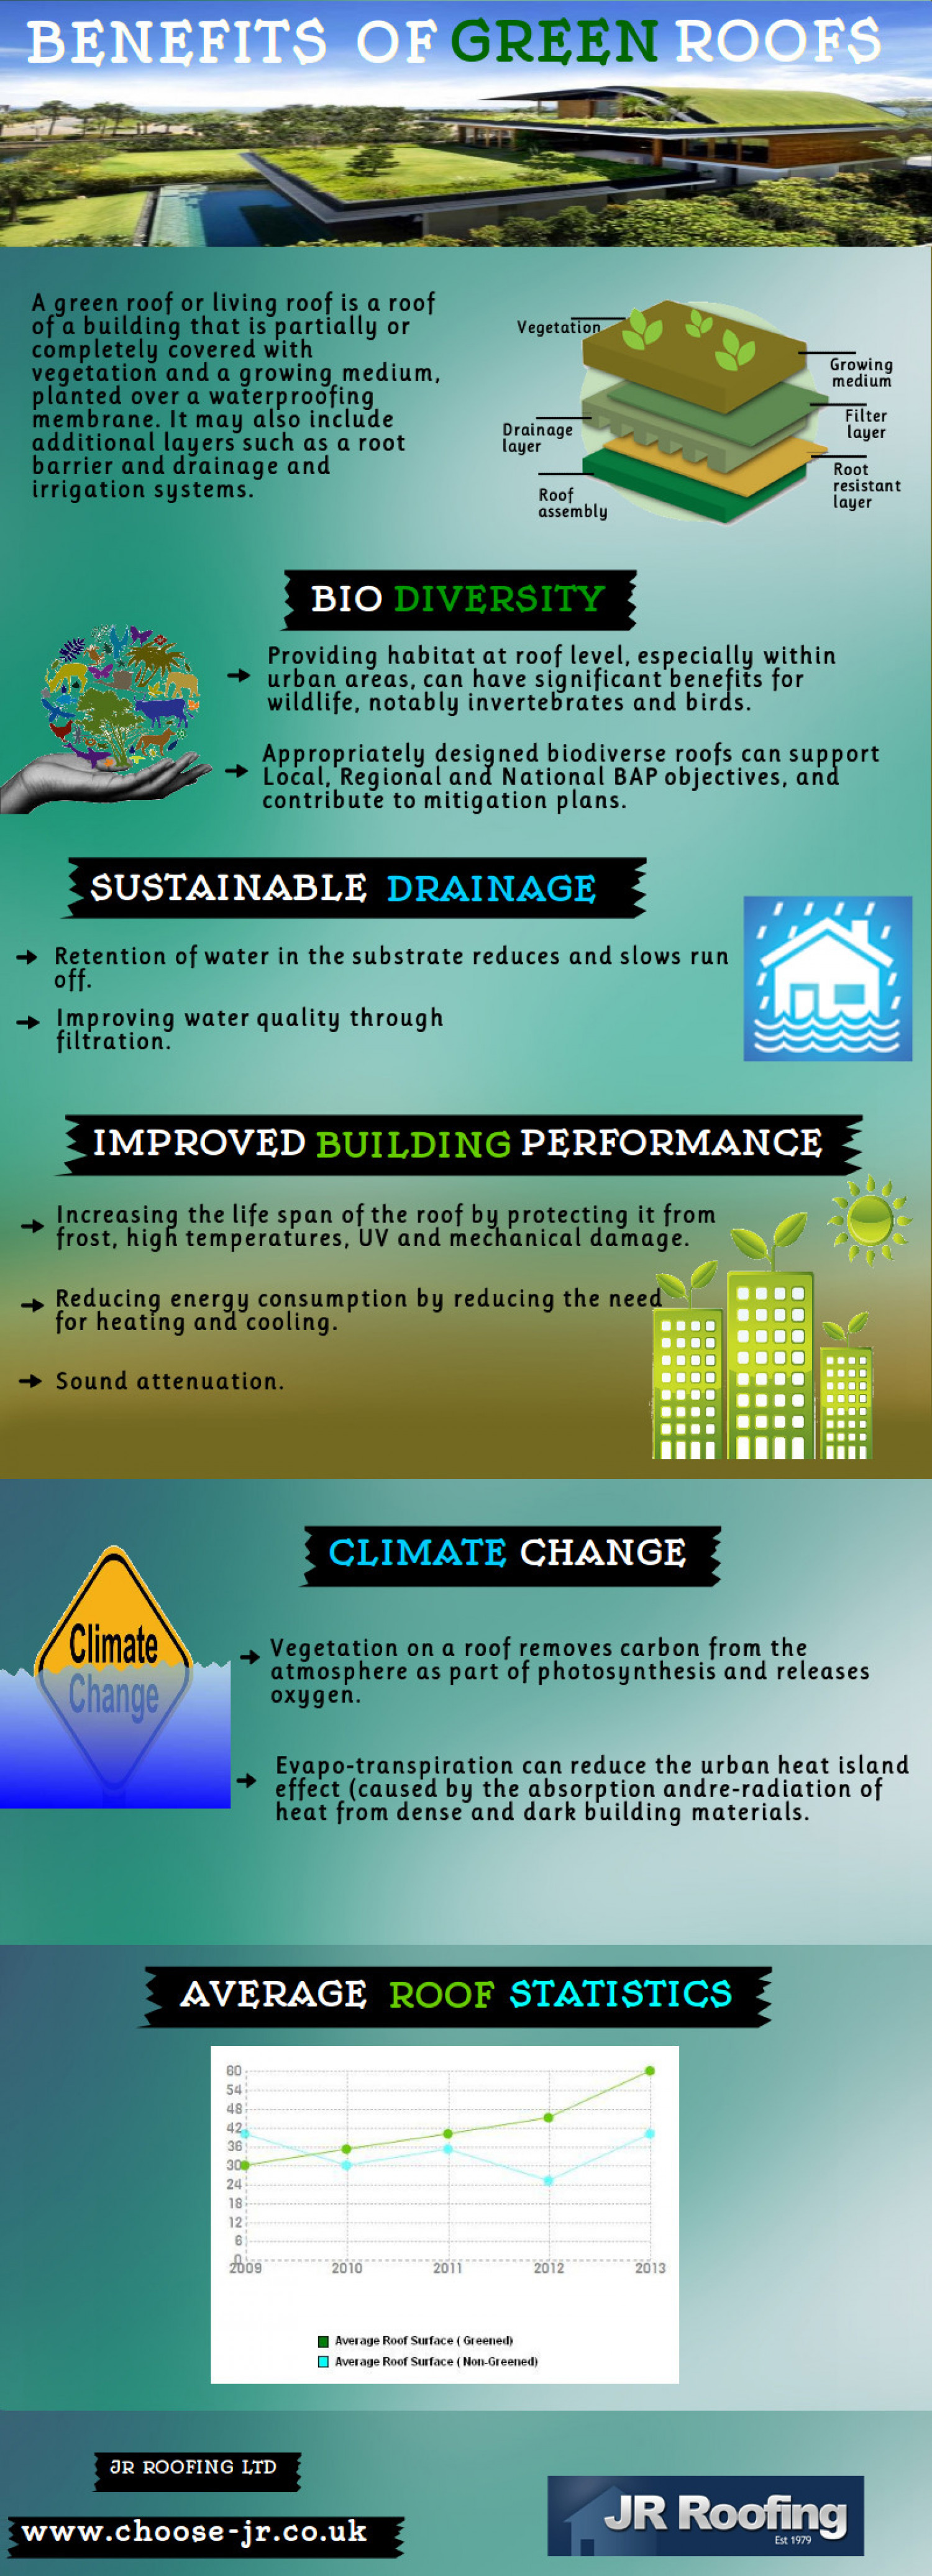 Benefits of Green Roofs Infographic